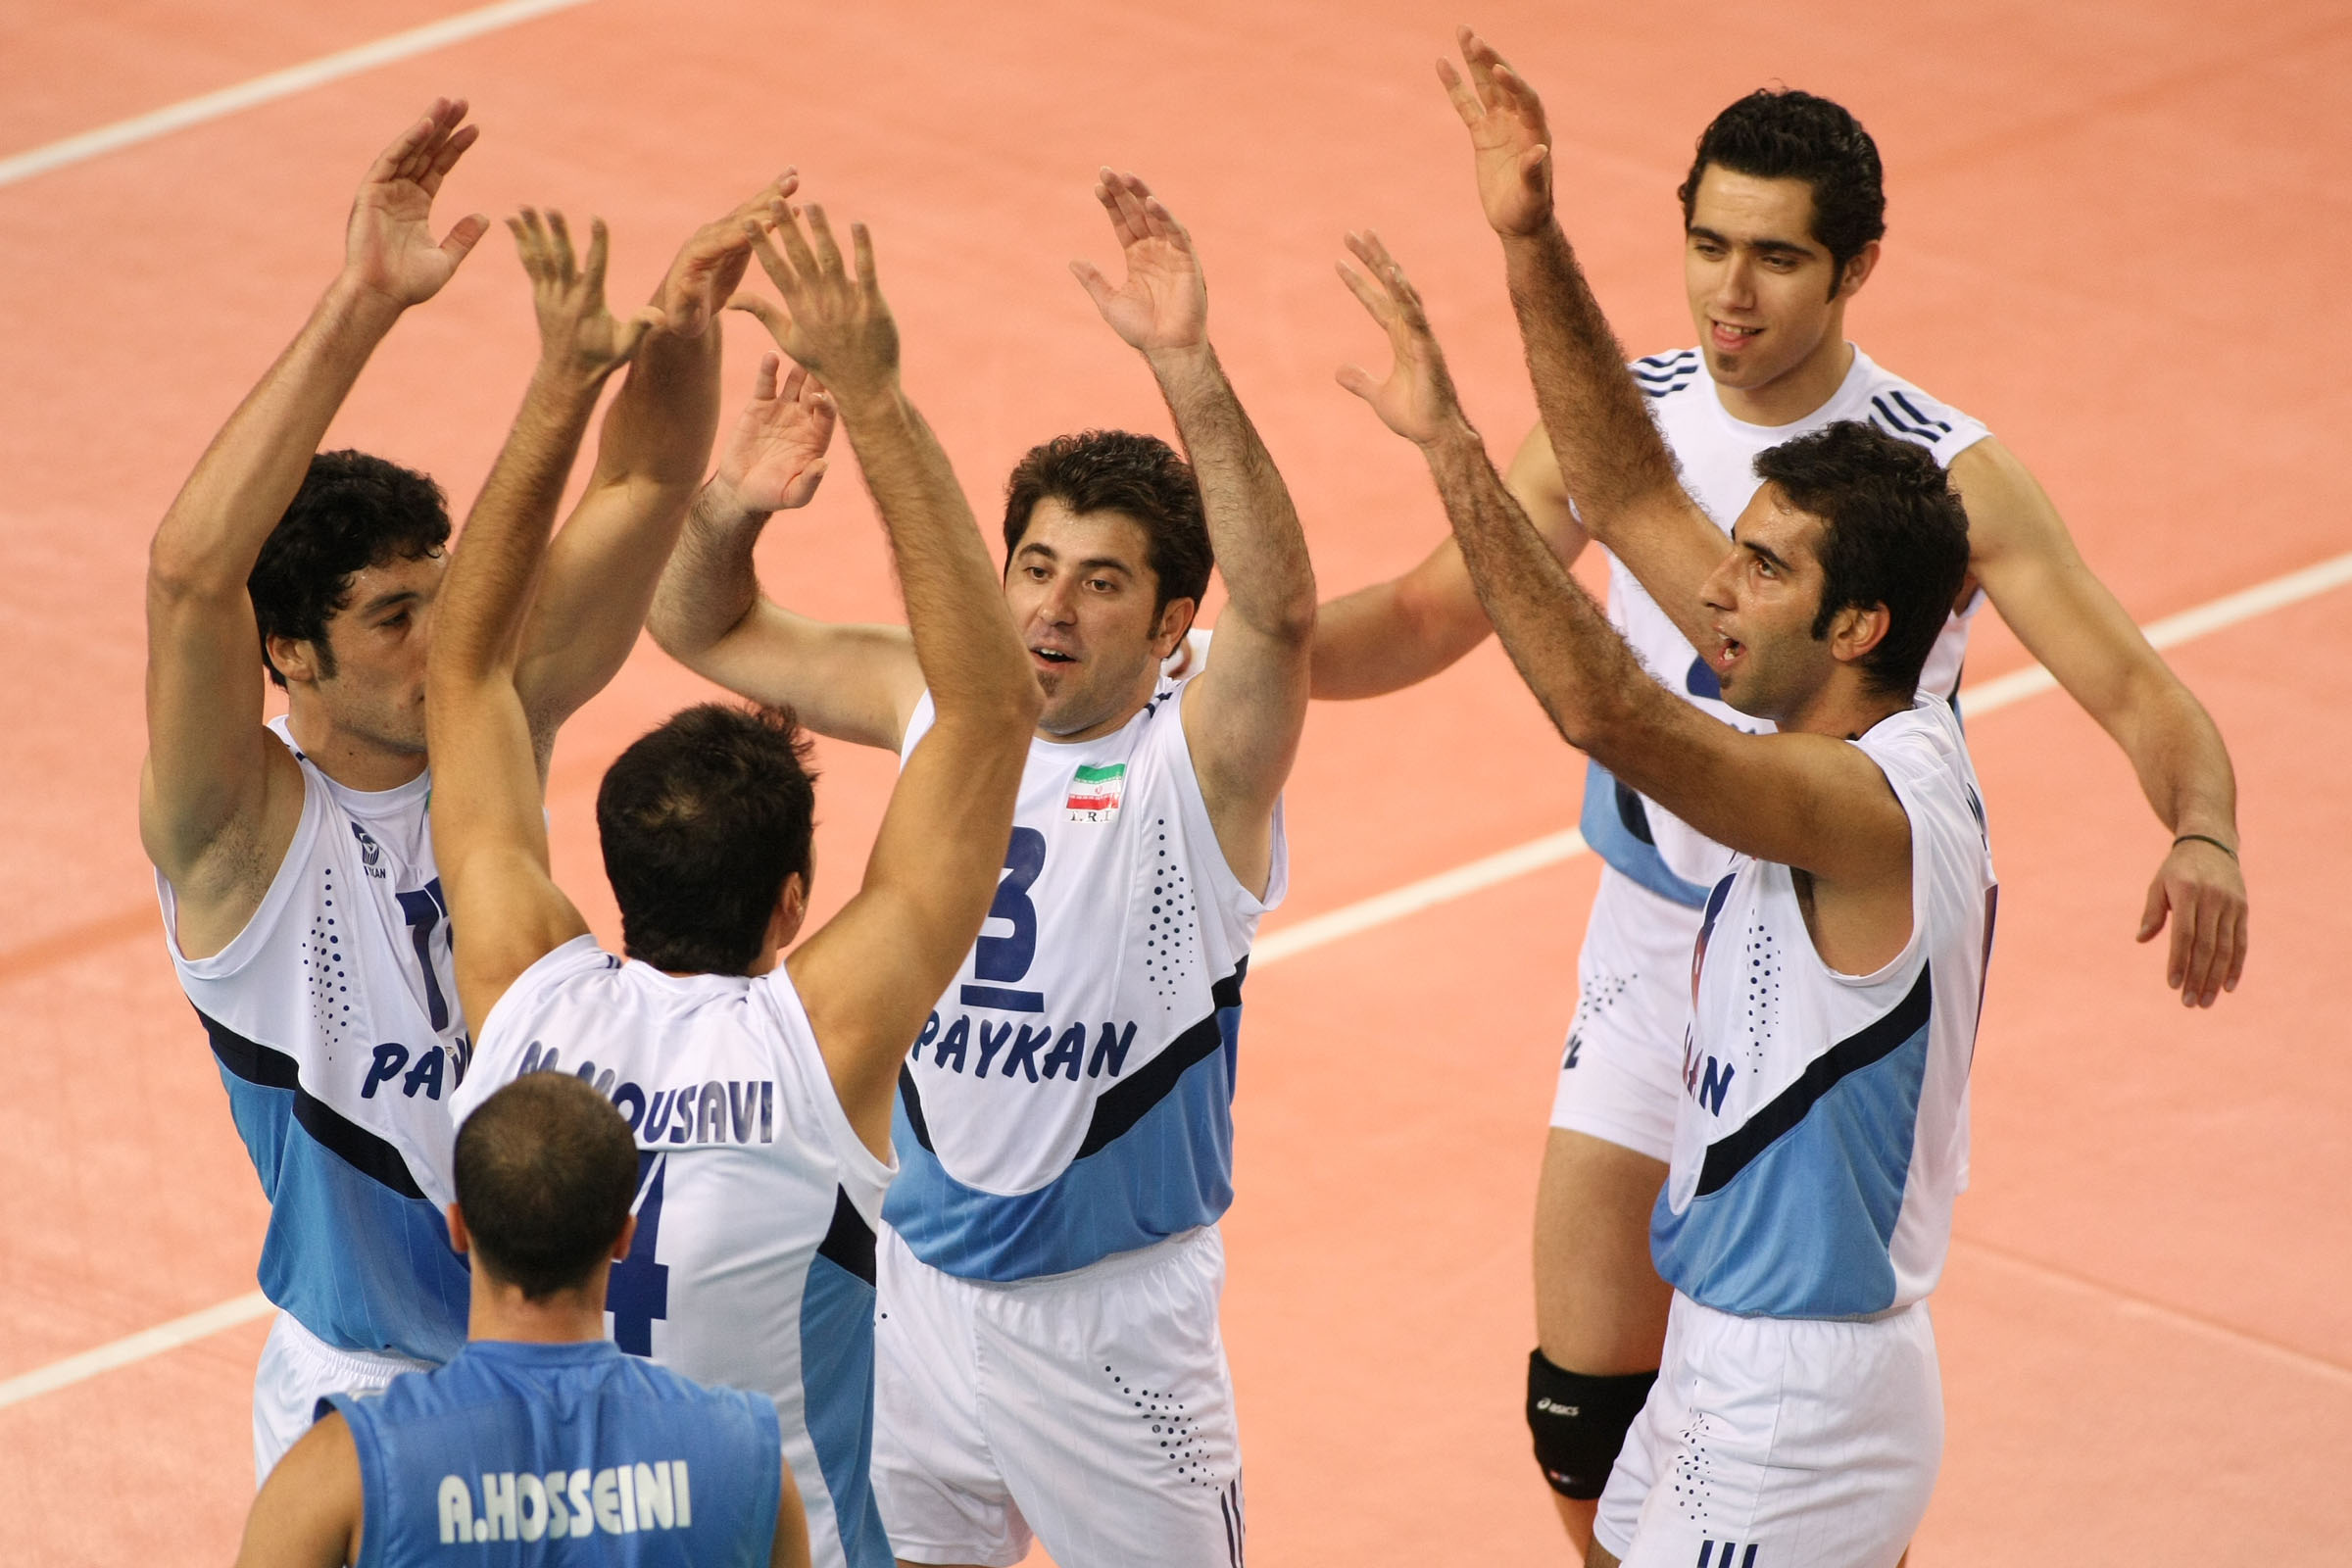 http://www.fivb.org/Vis2009/Images/GetImage.asmx?No=200698458&maxsize=500